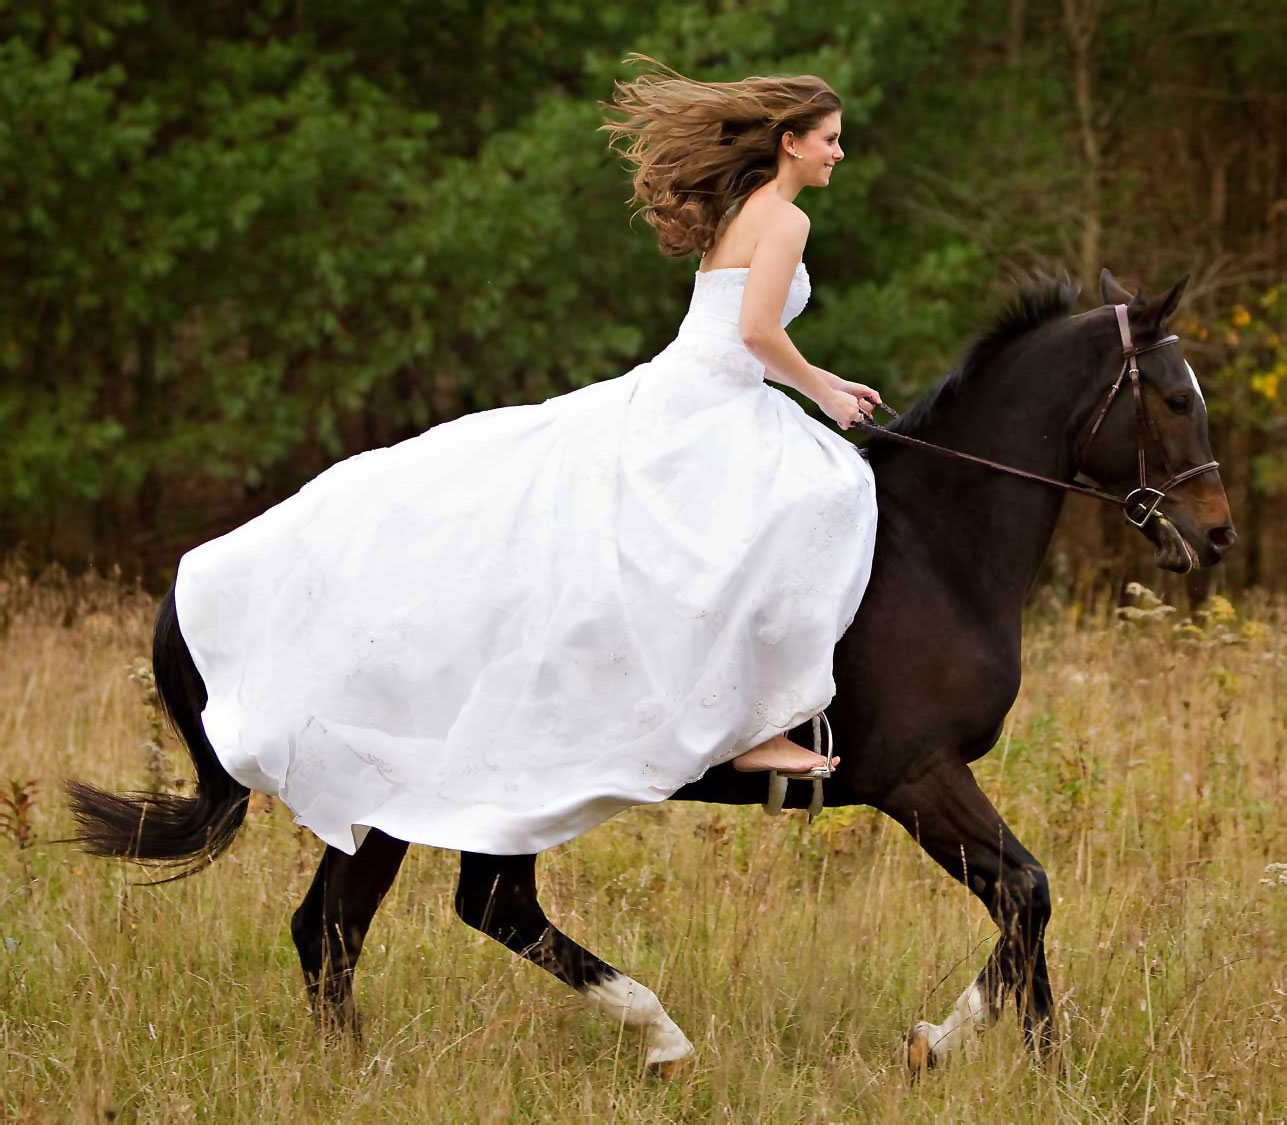 1000+ images about Horses & Weddings on Pinterest | Brides ...